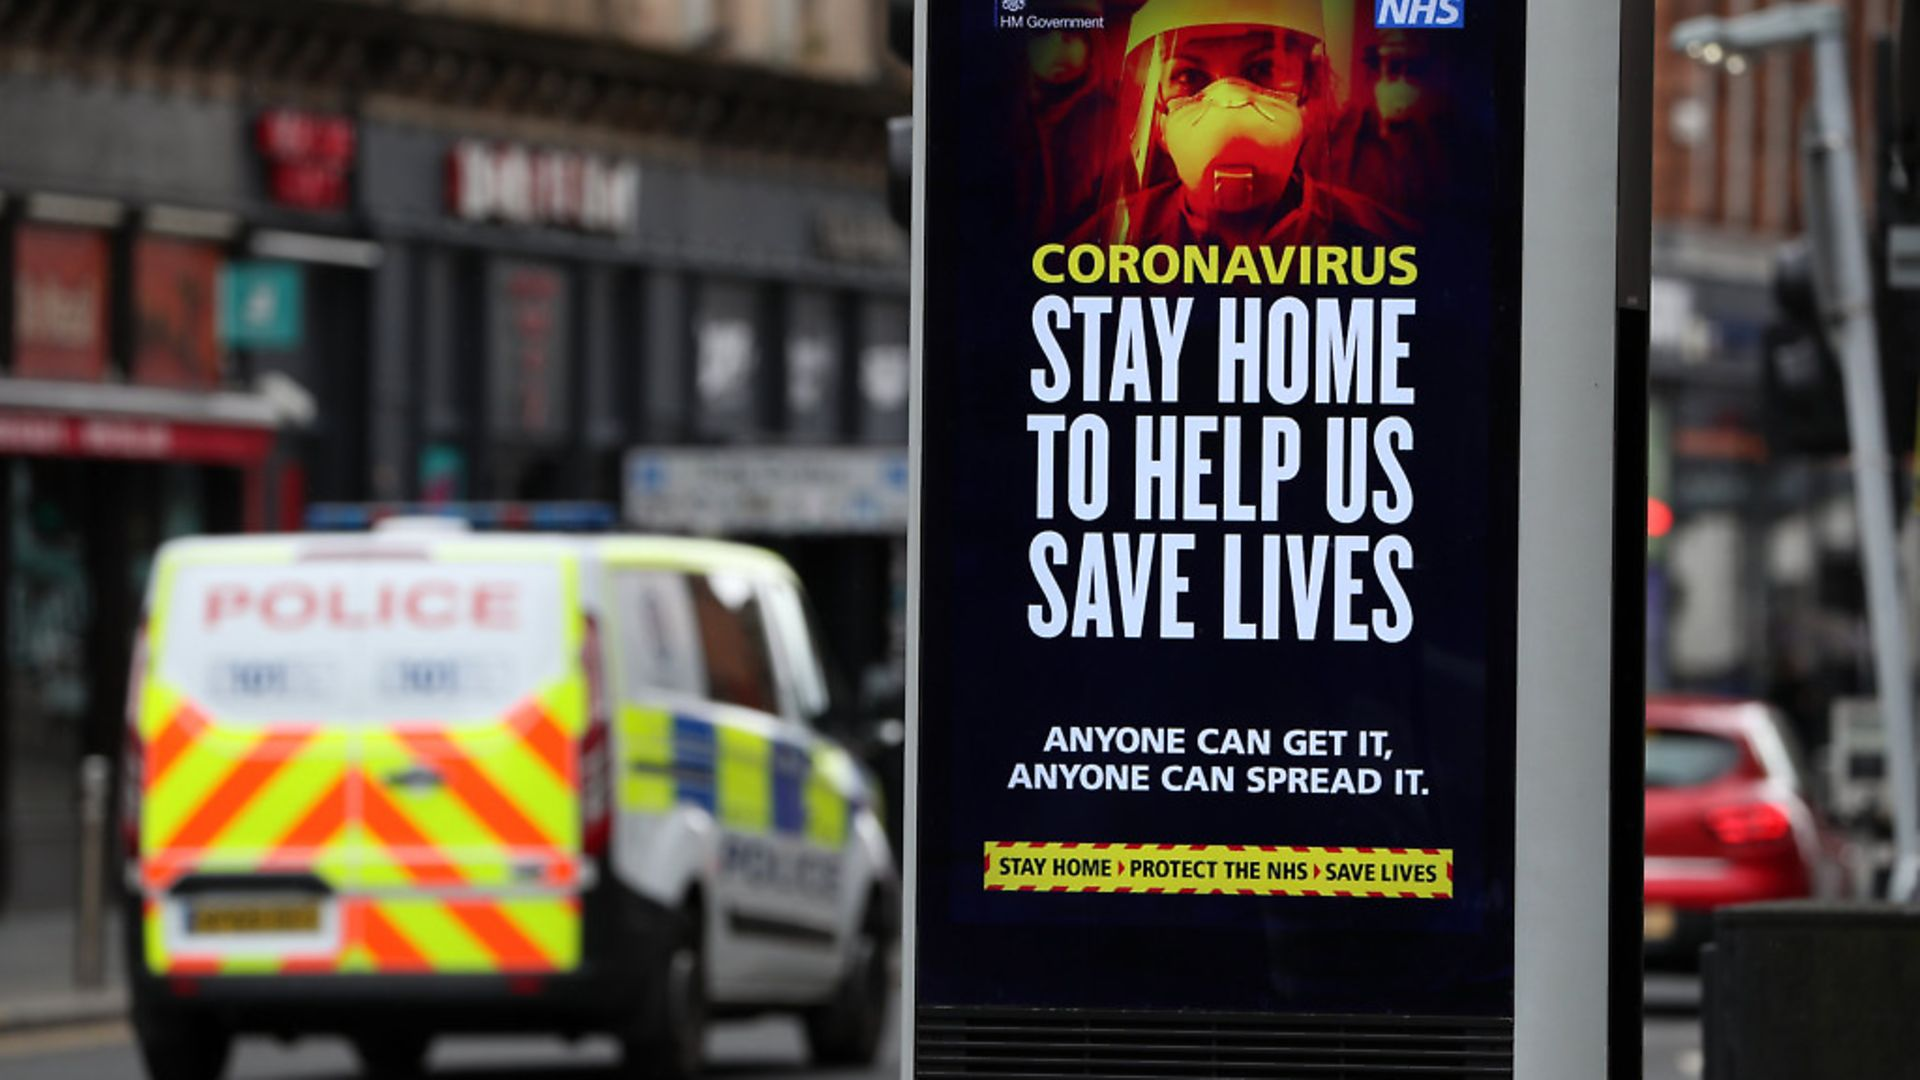 Police patrol the streets of Glasgow as the UK continues in lockdown to help curb the spread of the coronavirus. Photograph: Andrew Milligan/PA. - Credit: PA